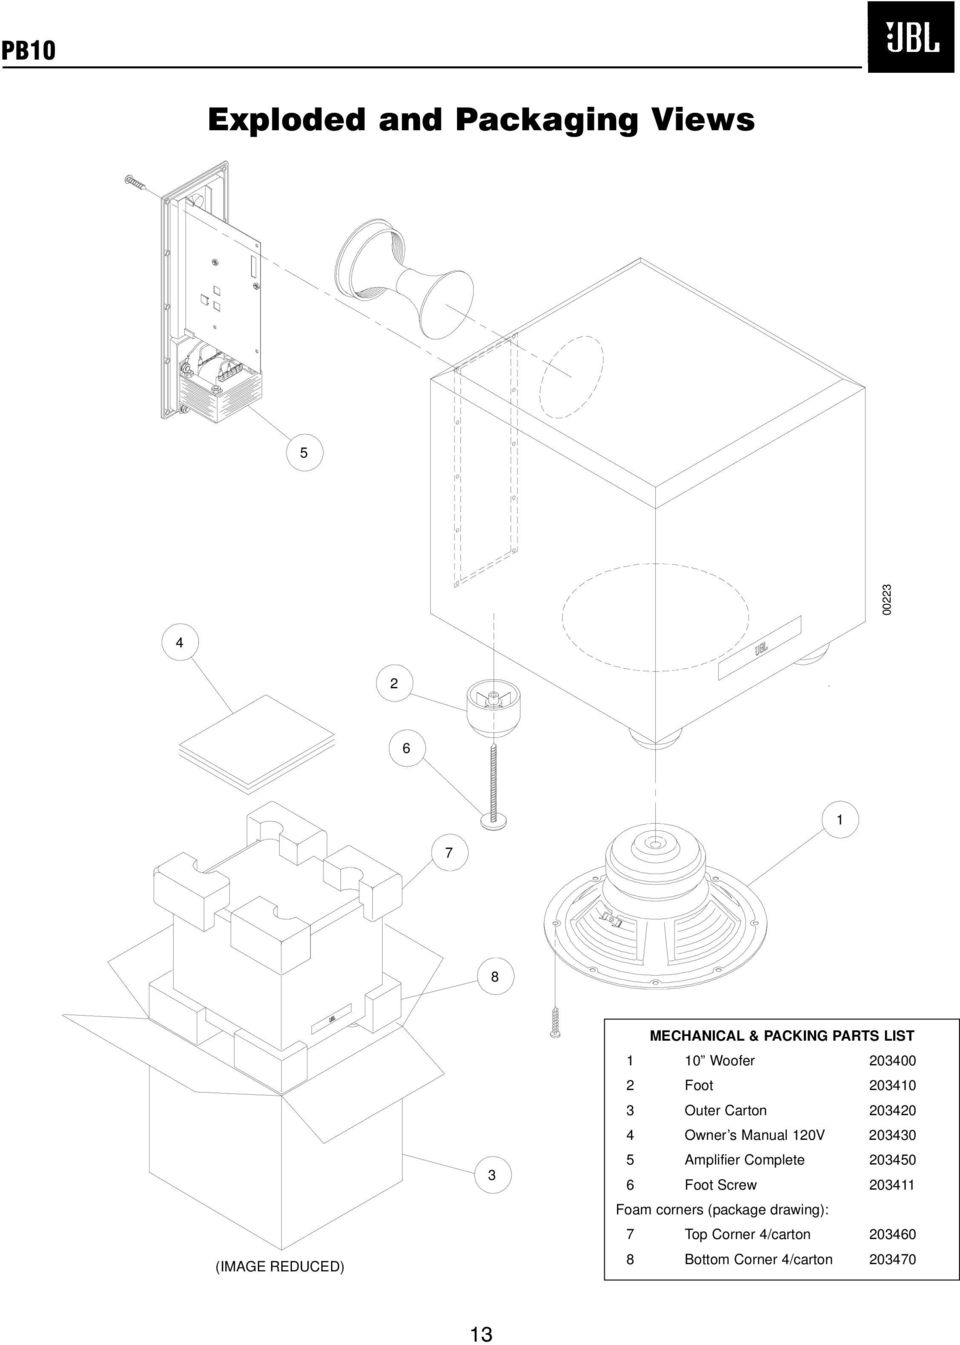 Powerbass Tm Series Pb10 Subwoofer Service Manual Jbl Incorporated Tda7294 Audio Amplifier Circuits P Marian S 120v 203430 5 Complete 203450 6 Foot Screw 203411 Foam Corners